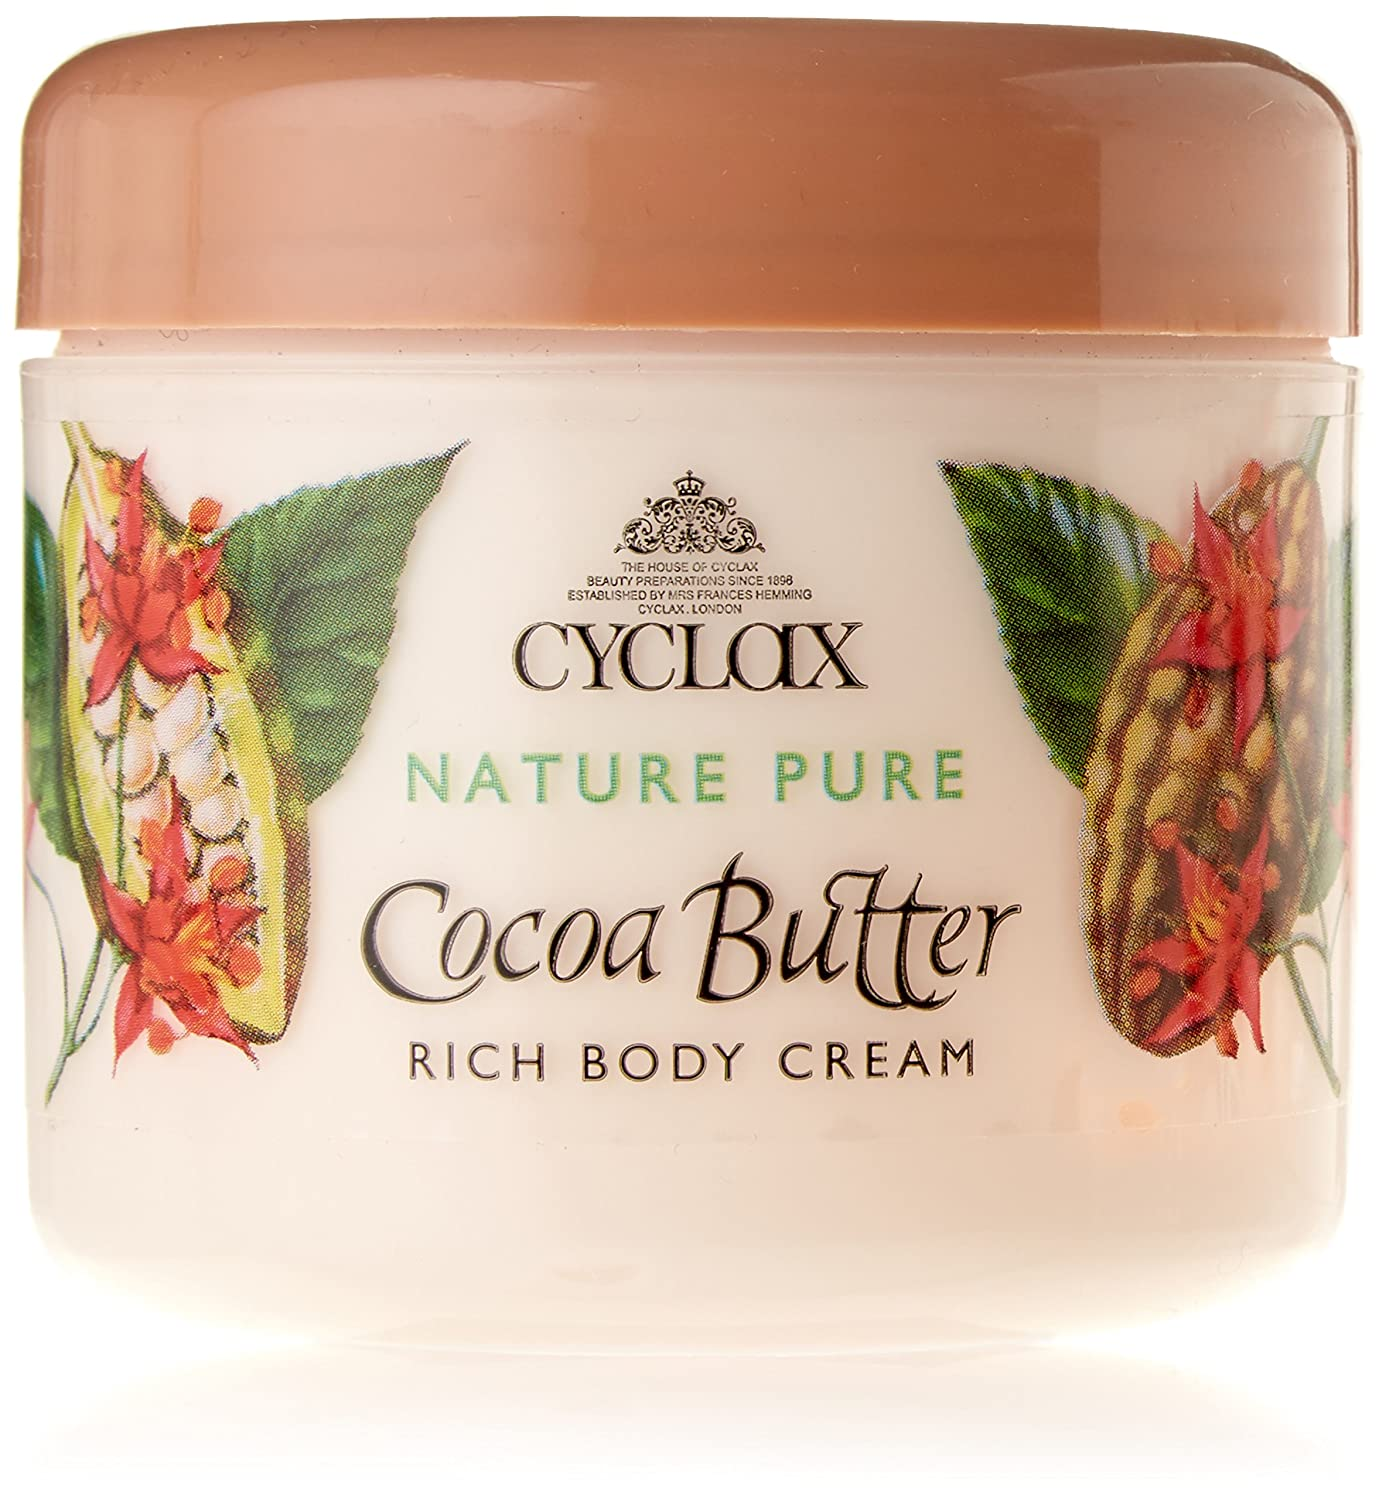 Cyclax Natura puro burro di cacao Crema Corpo 300ml Rich Richards & Appleby 000786